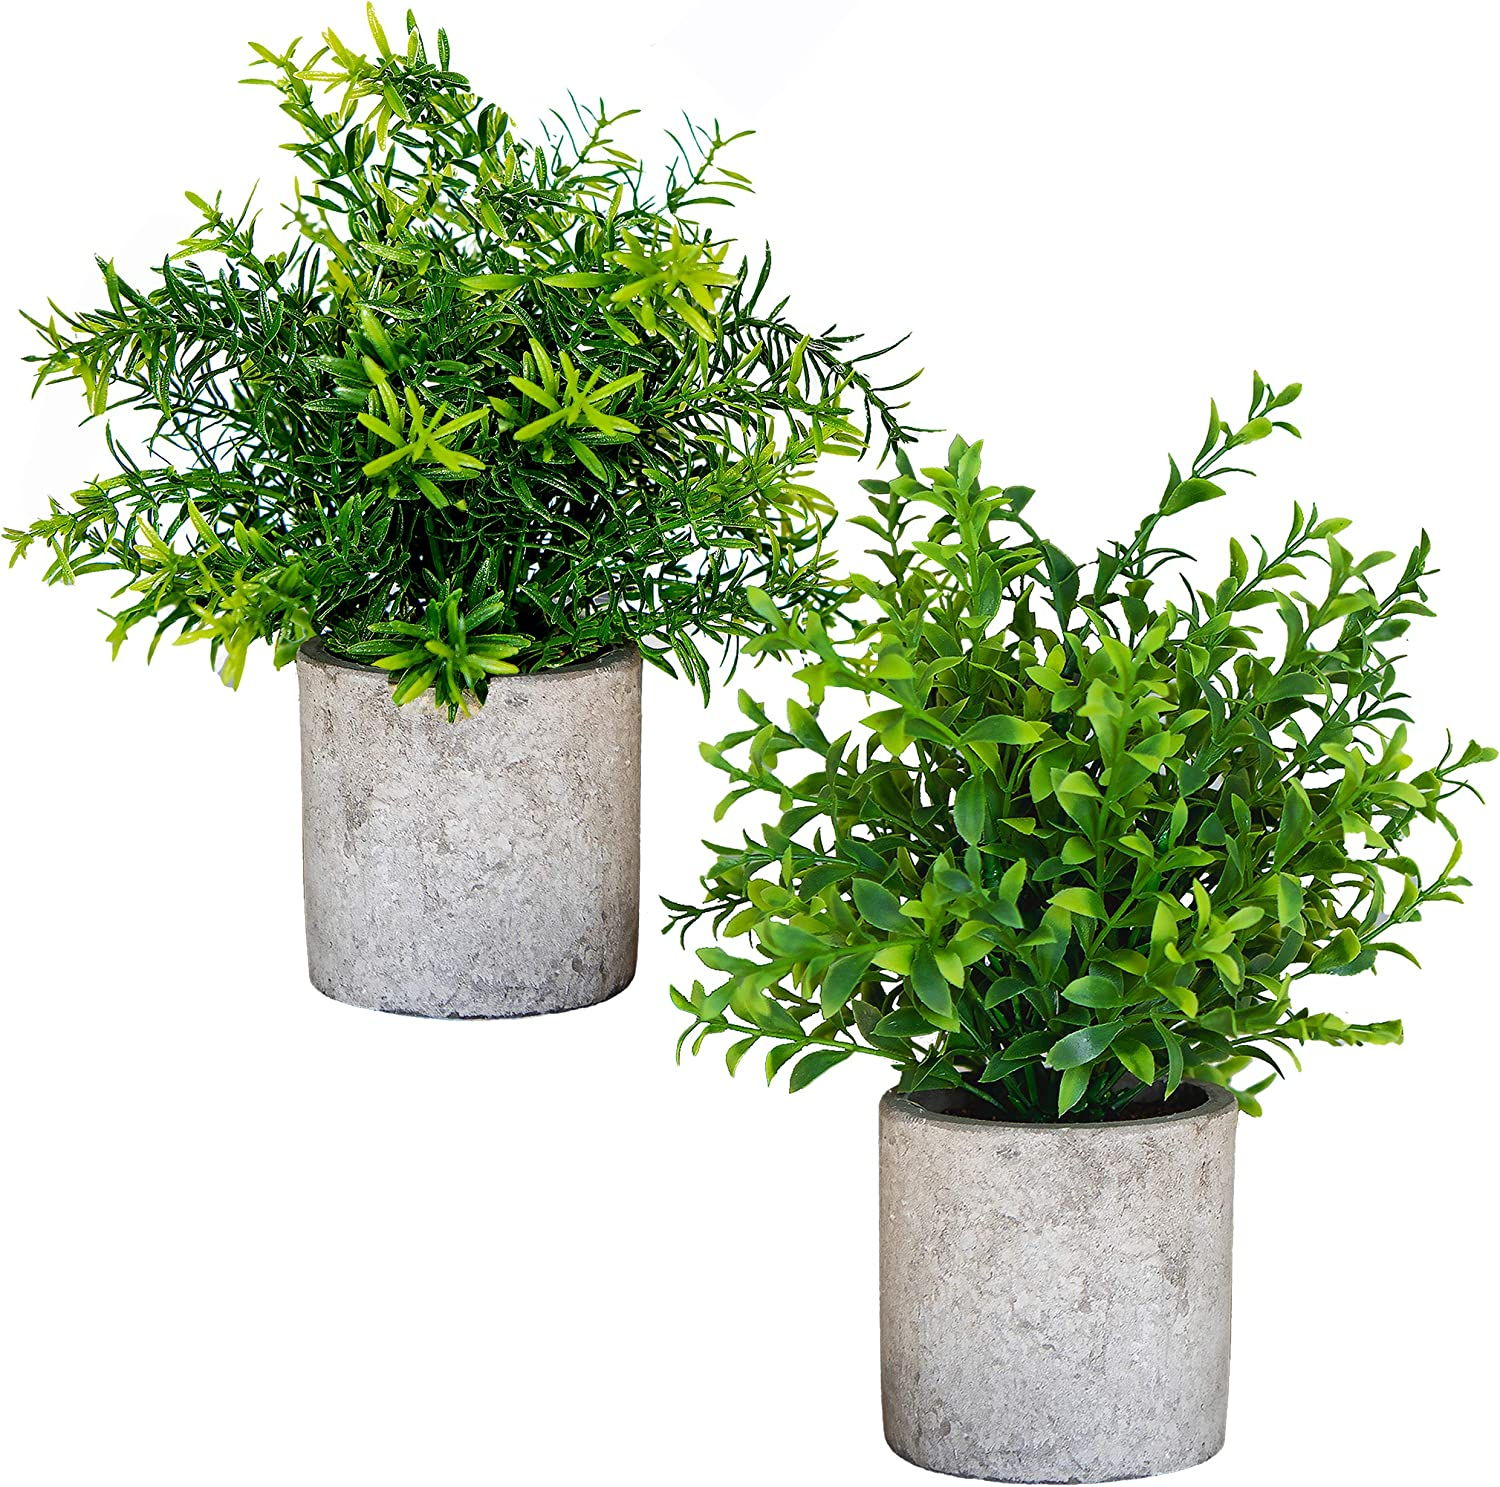 Amazon Com Small Artificial Plants In Pots For Home Decor Fake Faux Feaux Face Decorative Plant Decoration Arrangements Mini Artificial Potted Plants Greenery Decor Shelf Desk Office Green Rosemary Bamboo 2 Kitchen